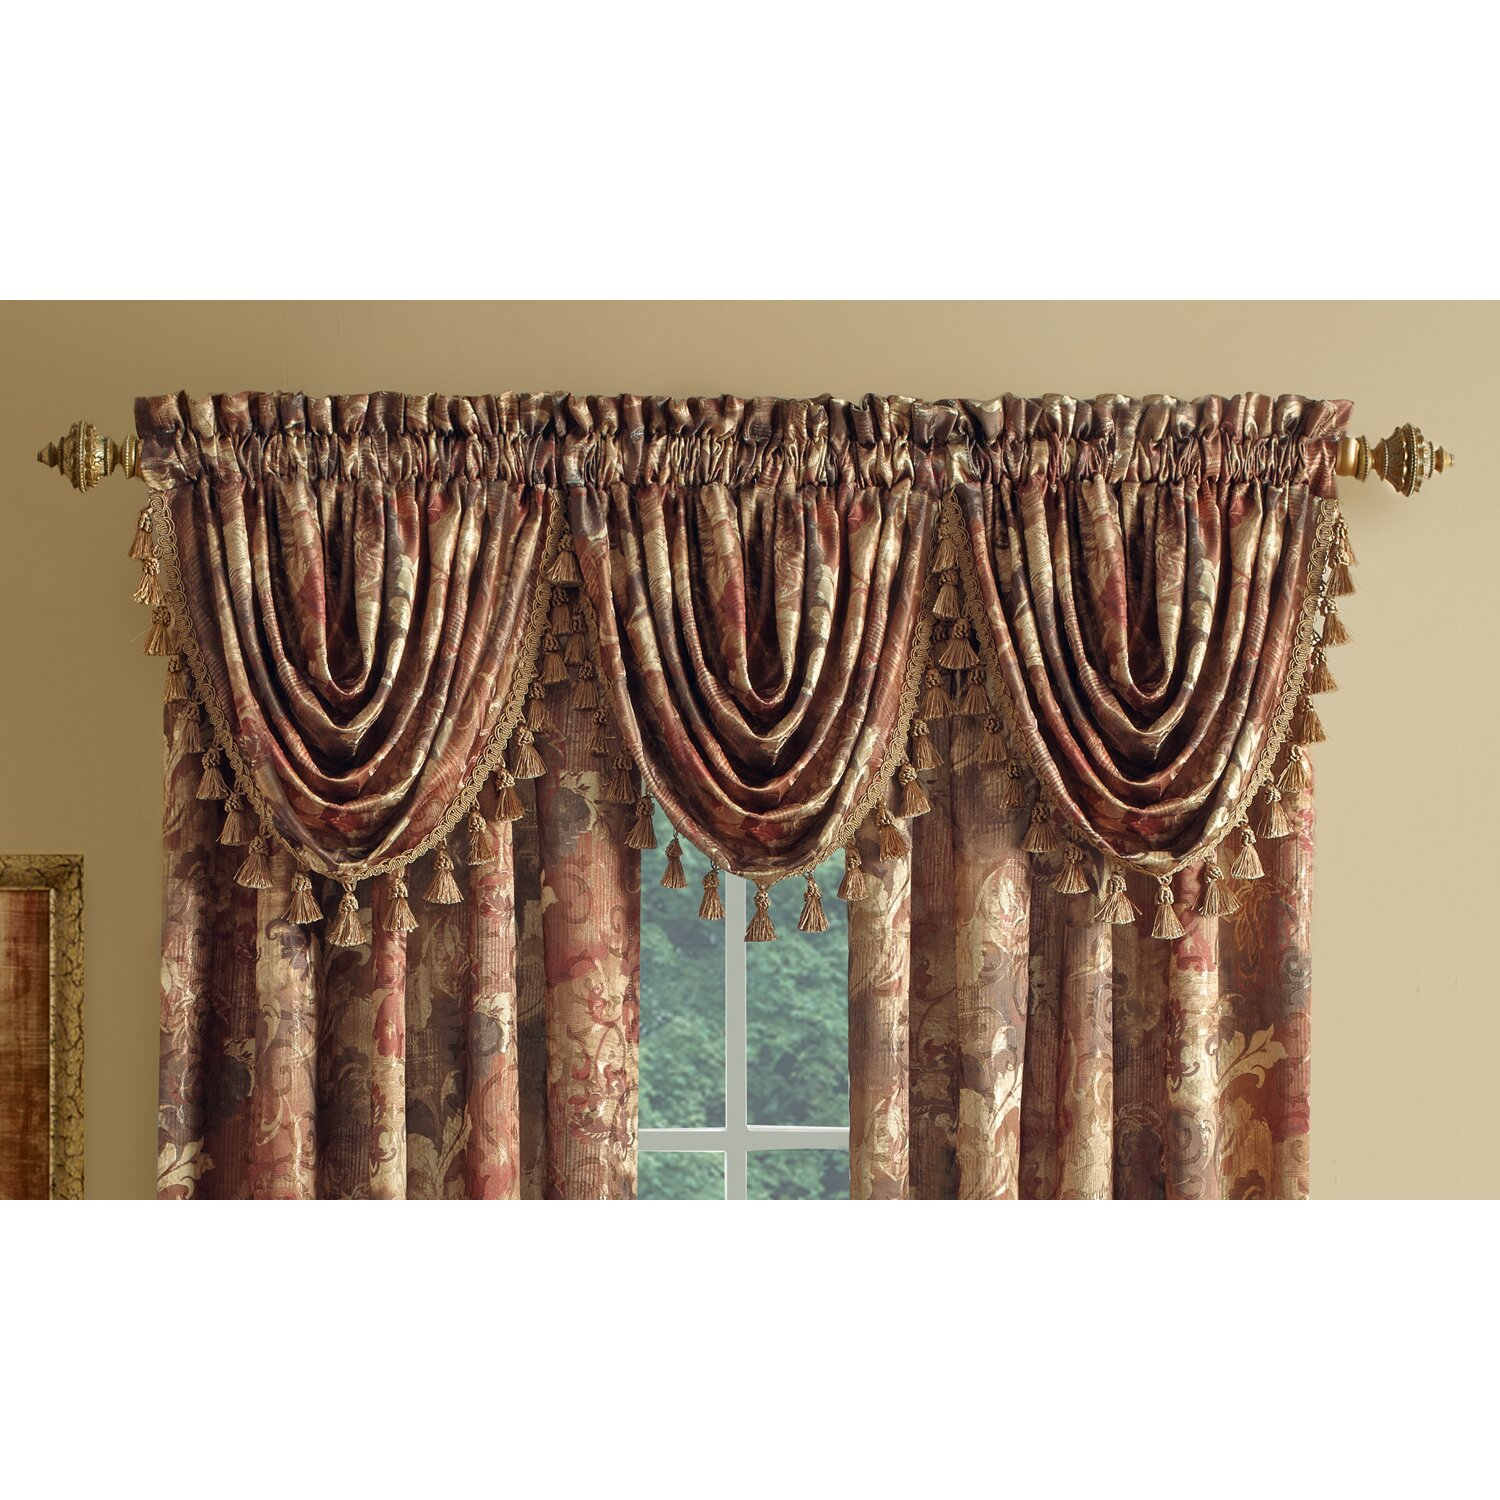 Go gold curtains and valances - Go Gold Curtains And Valances